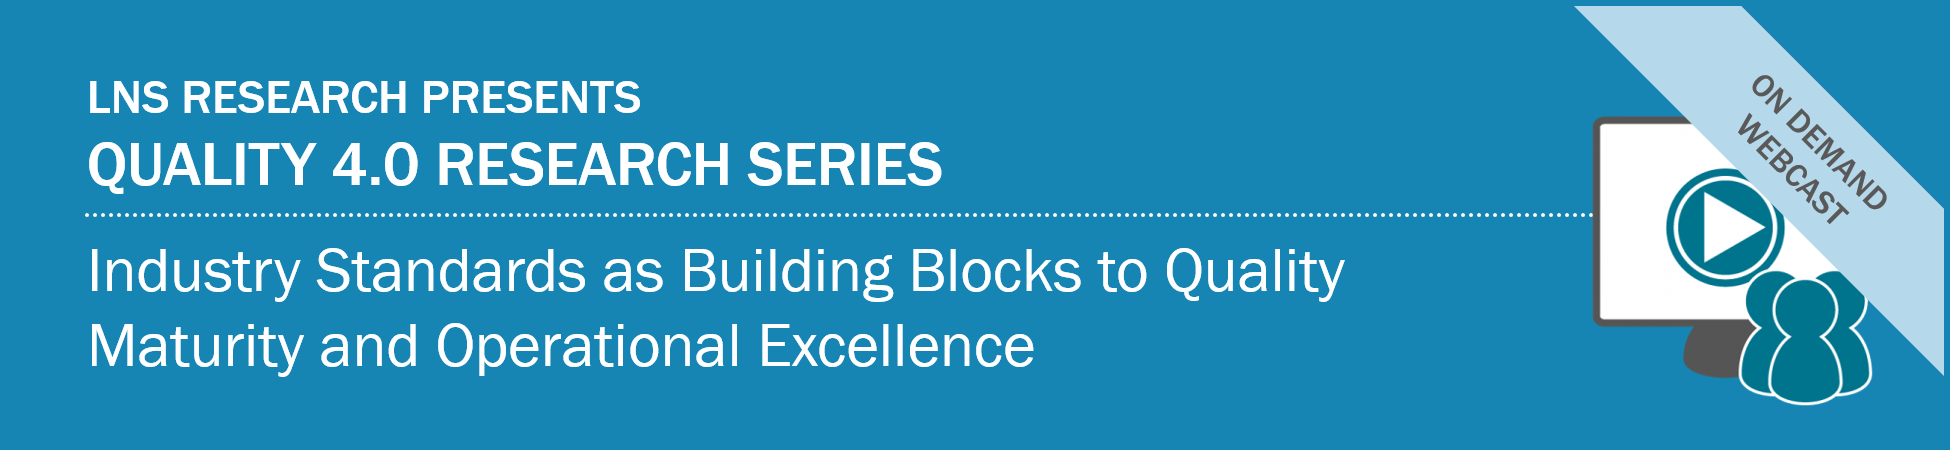 Webcast: Industry Standards as Building Blocks to Quality Maturity and Operational Excellence Slides and Recording